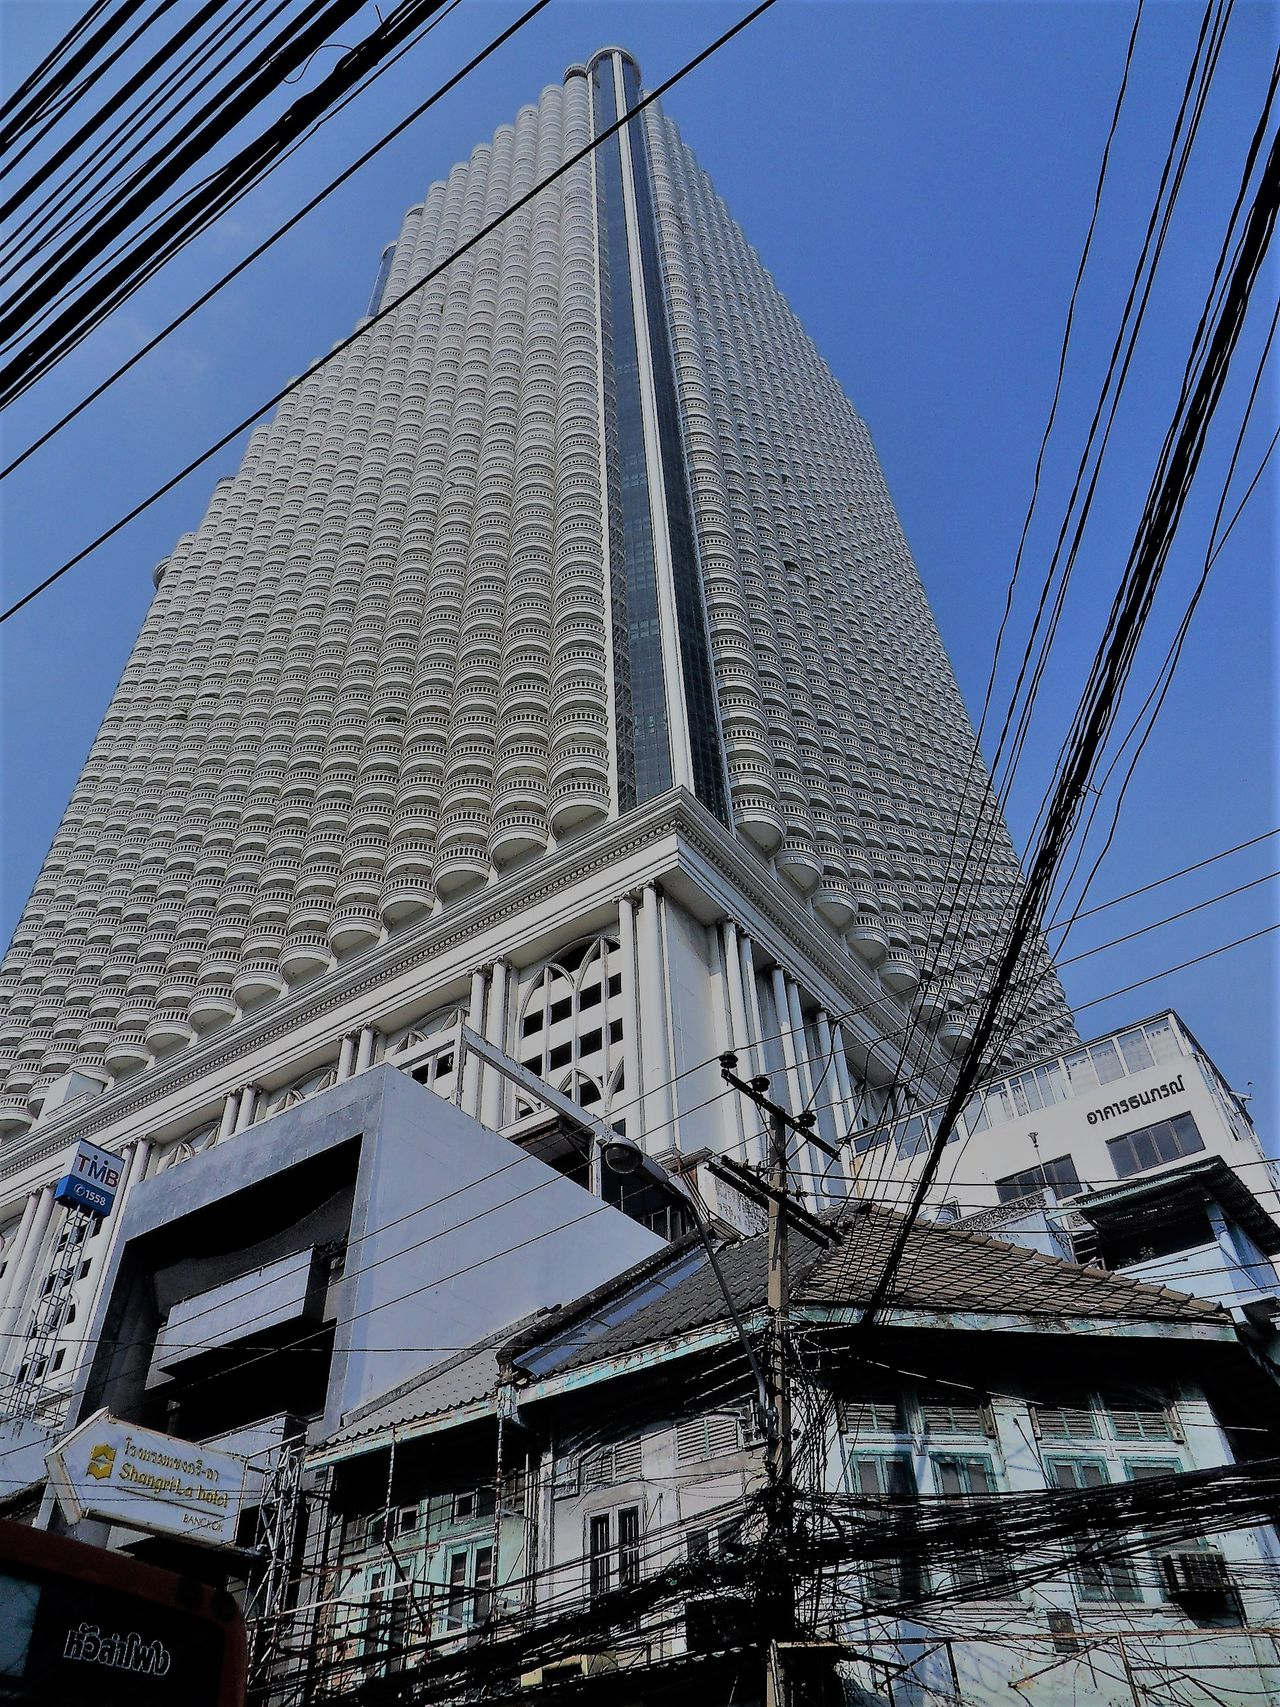 Architecture Bangkok City Life Bangkok Streetphotography Bangkok Thailand. Building Exterior Built Structure City Clear Sky Day Low Angle View No People Outdoors Sky